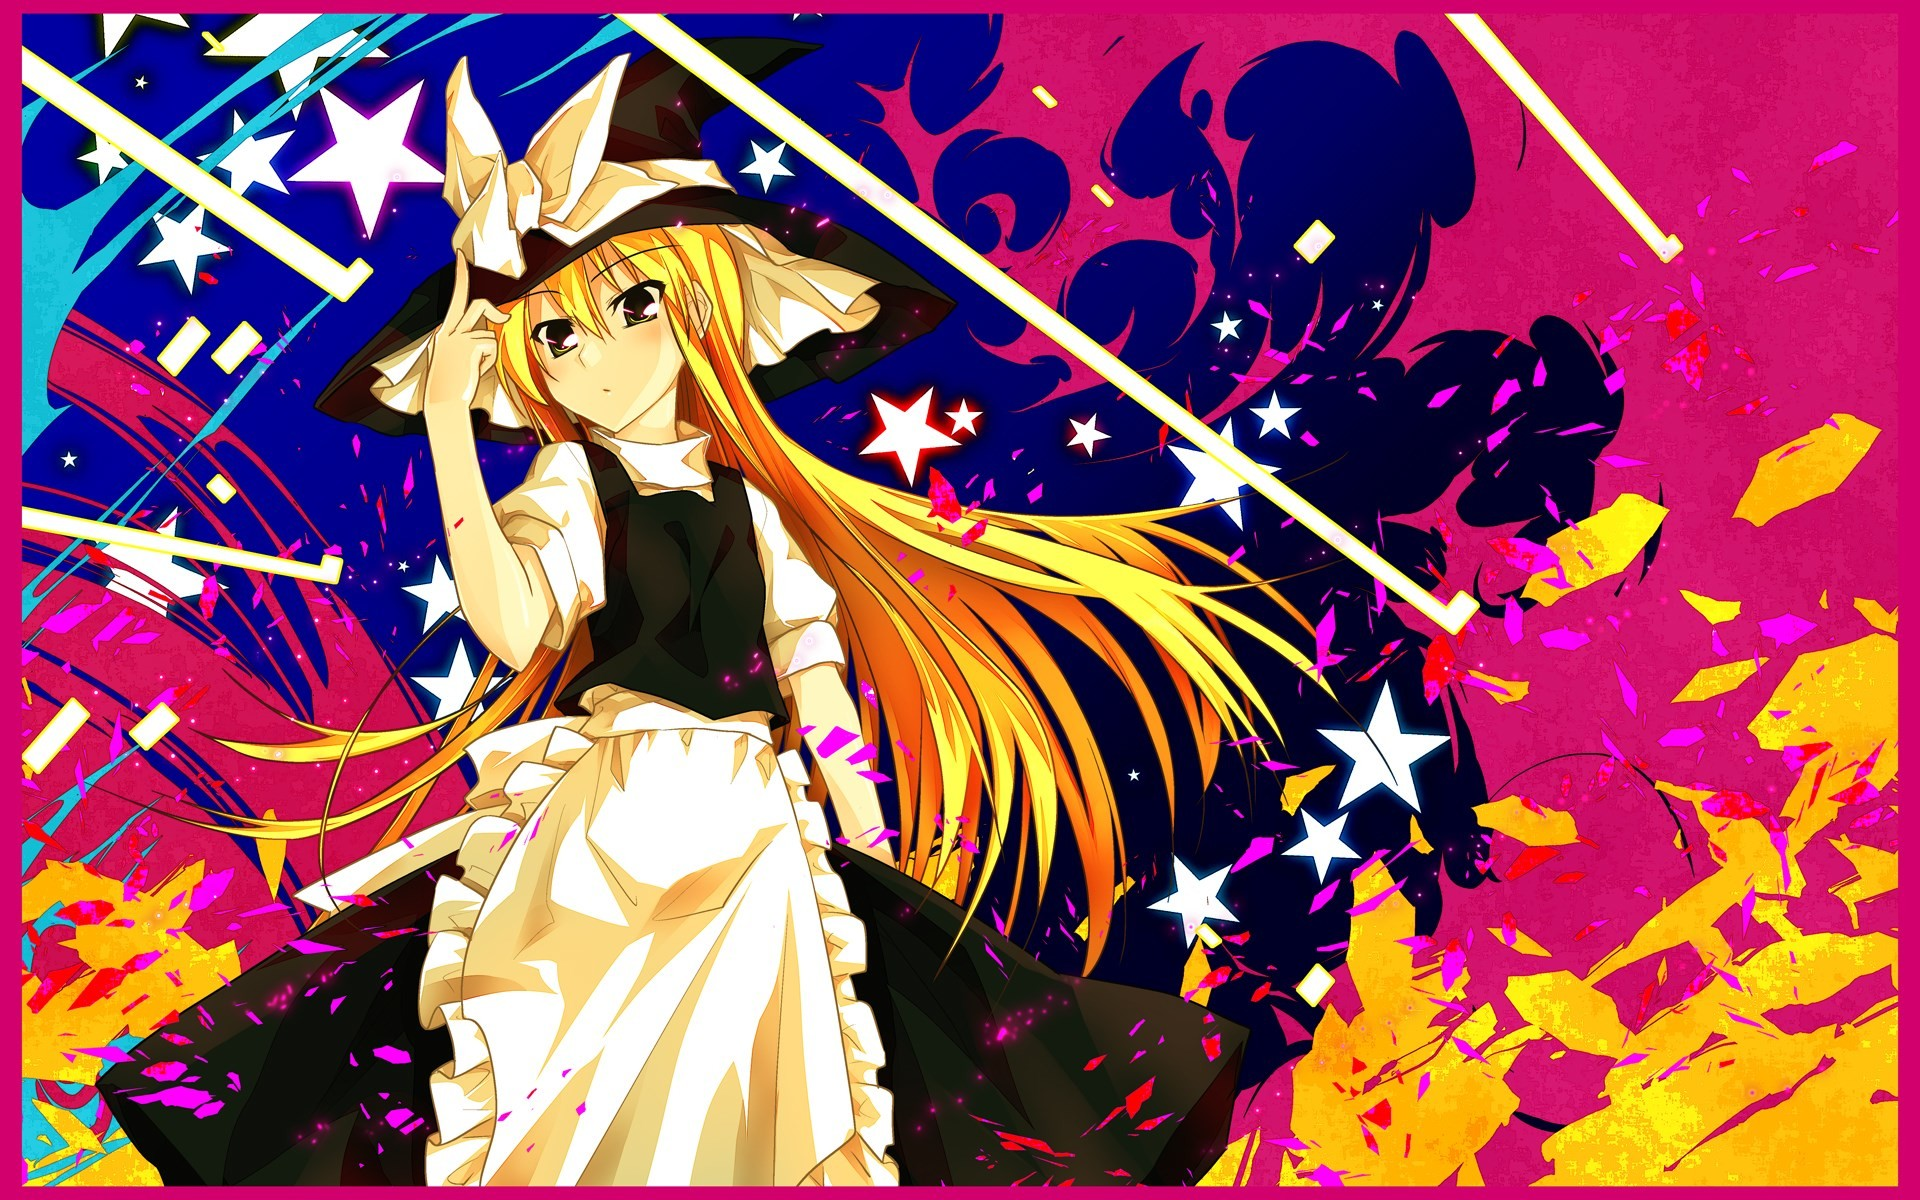 touhou wallpaper hd backgrounds images by Wilford Robin (2017-03-09)